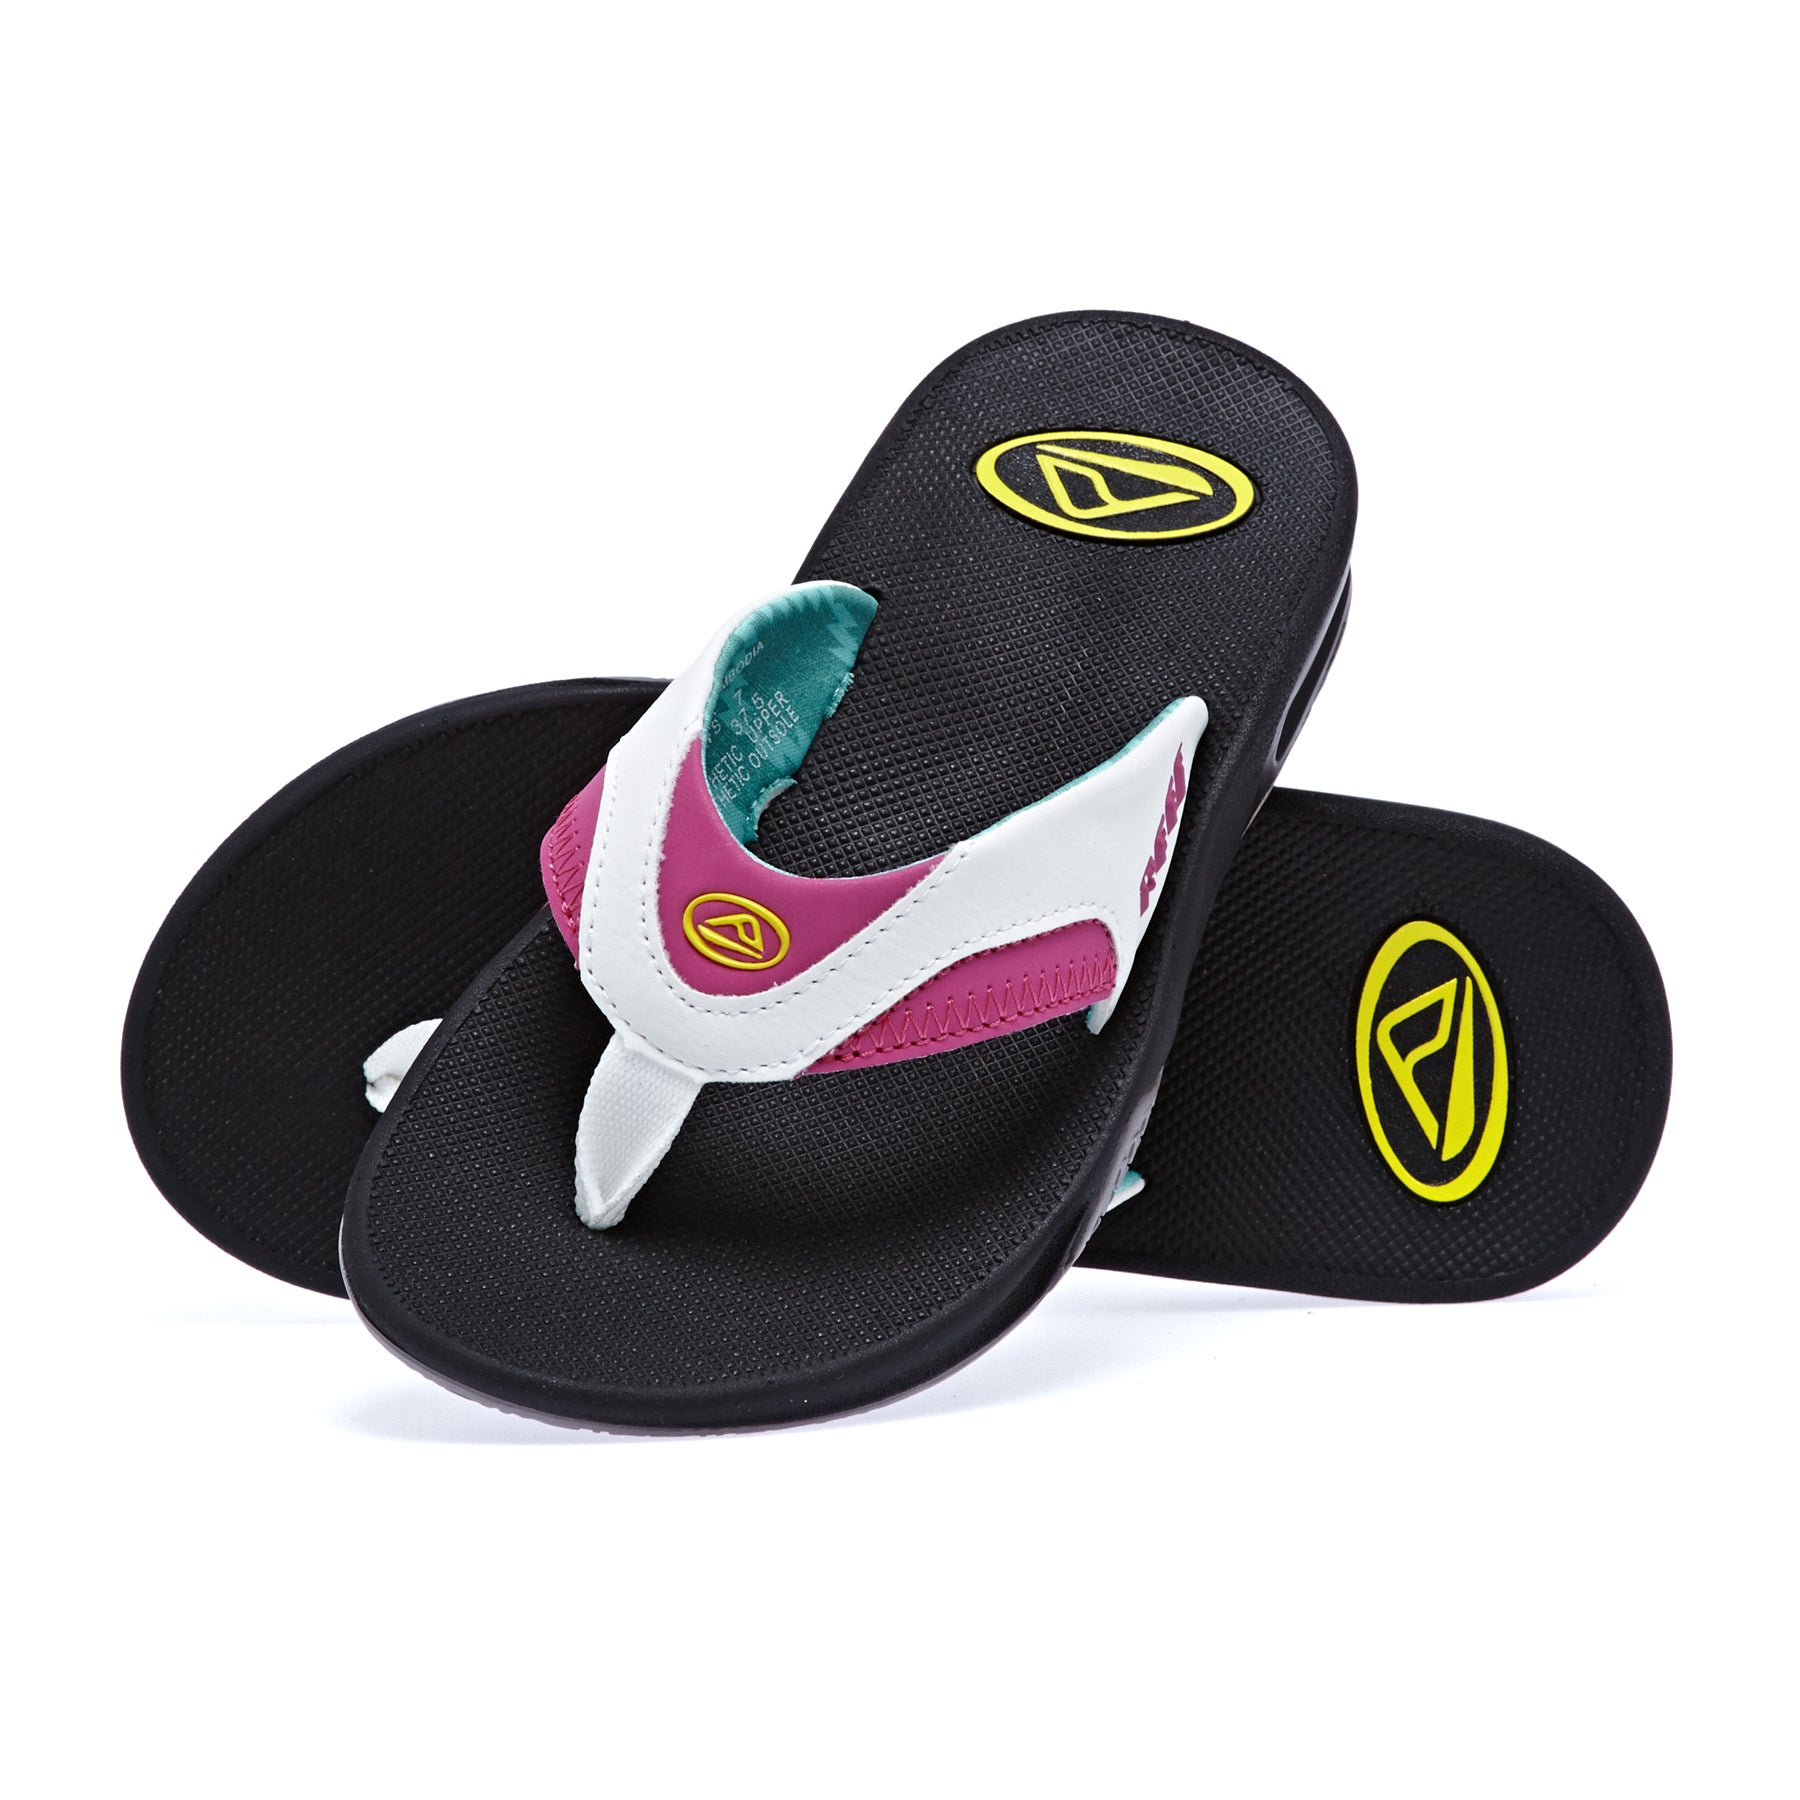 Reef Fanning Womens Sandals - Bright Nights